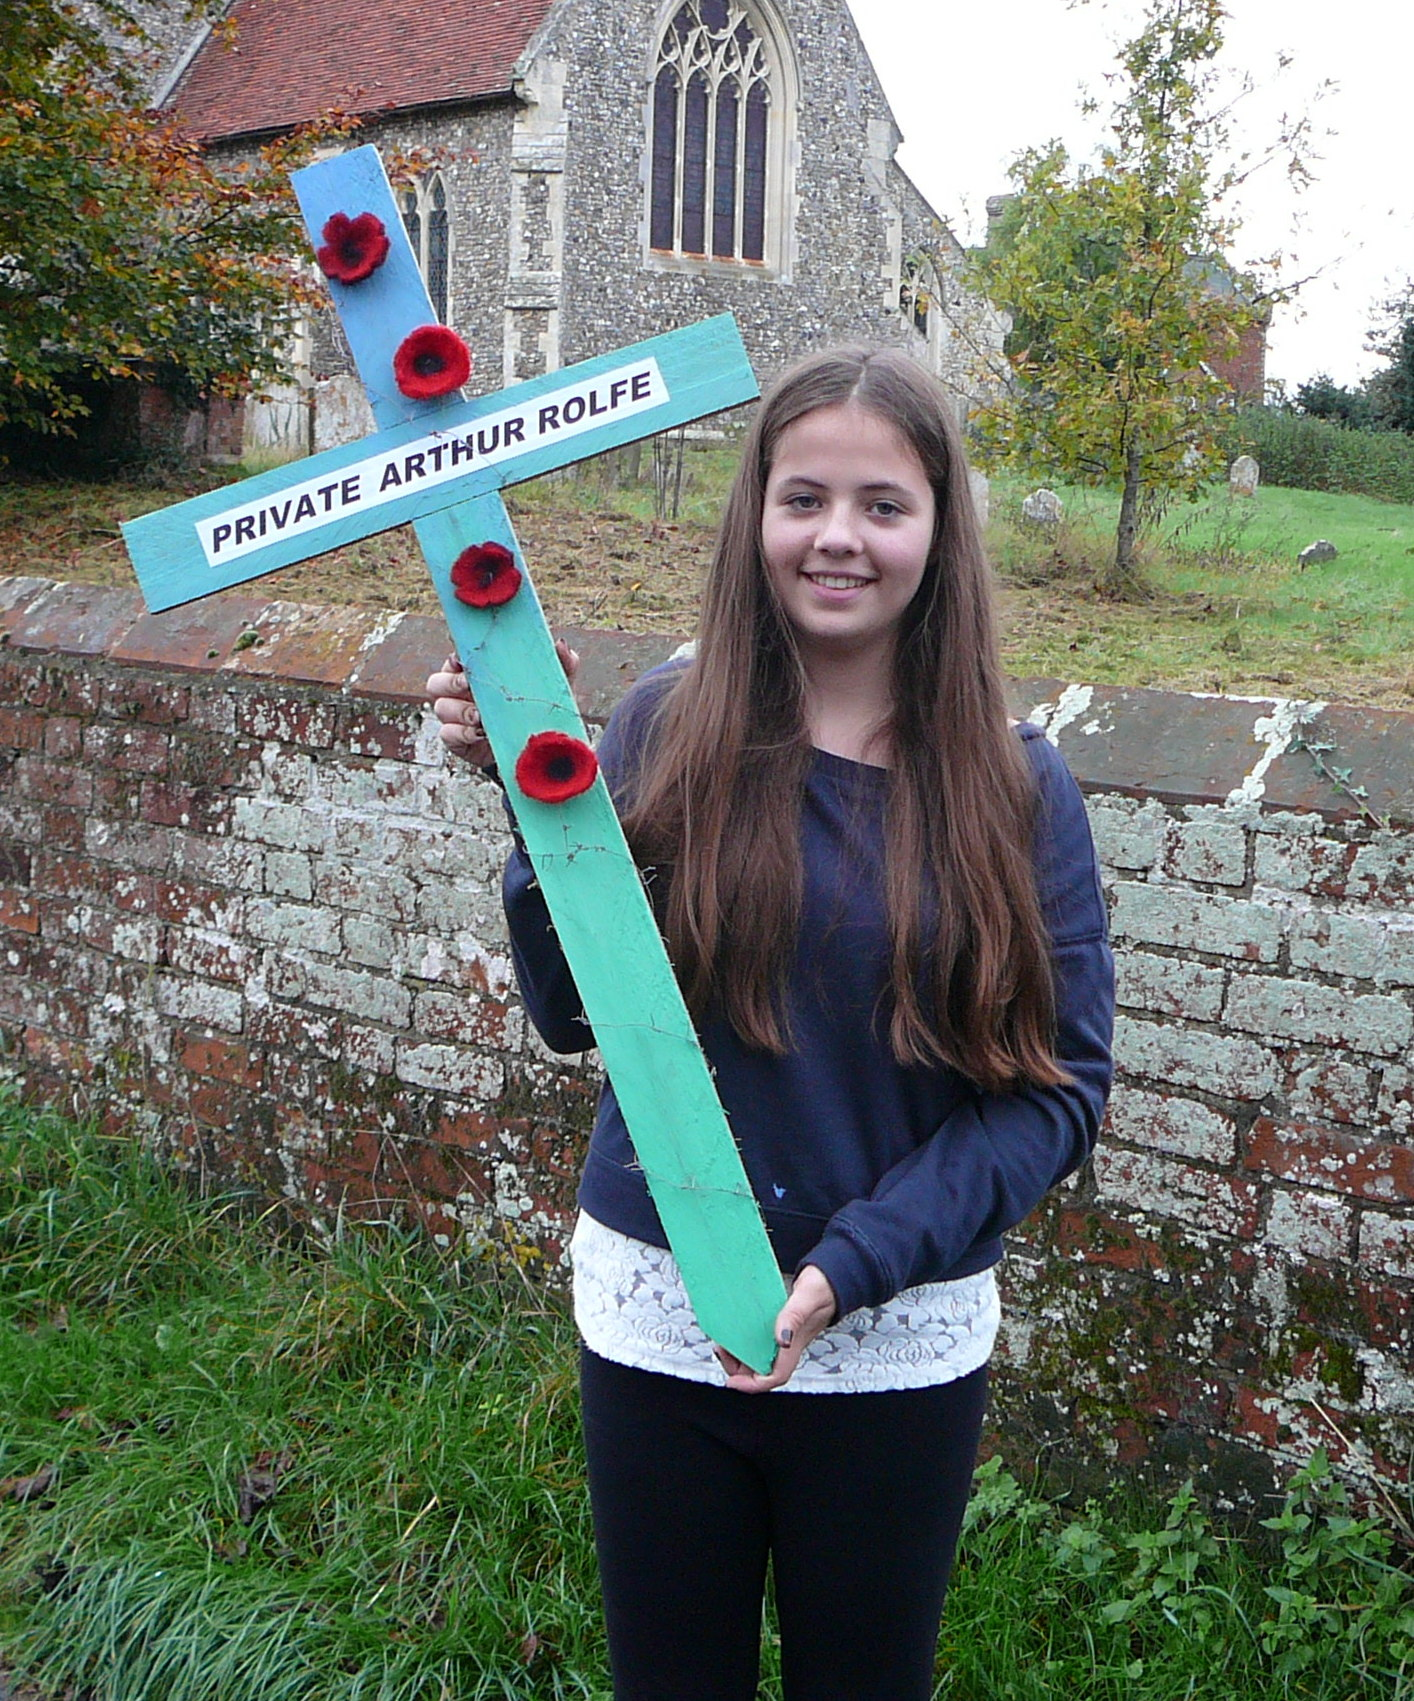 124 JESSICA GANT WITH THE CROSS IN MEMORY OF ARTHUR ROLFE.jpg